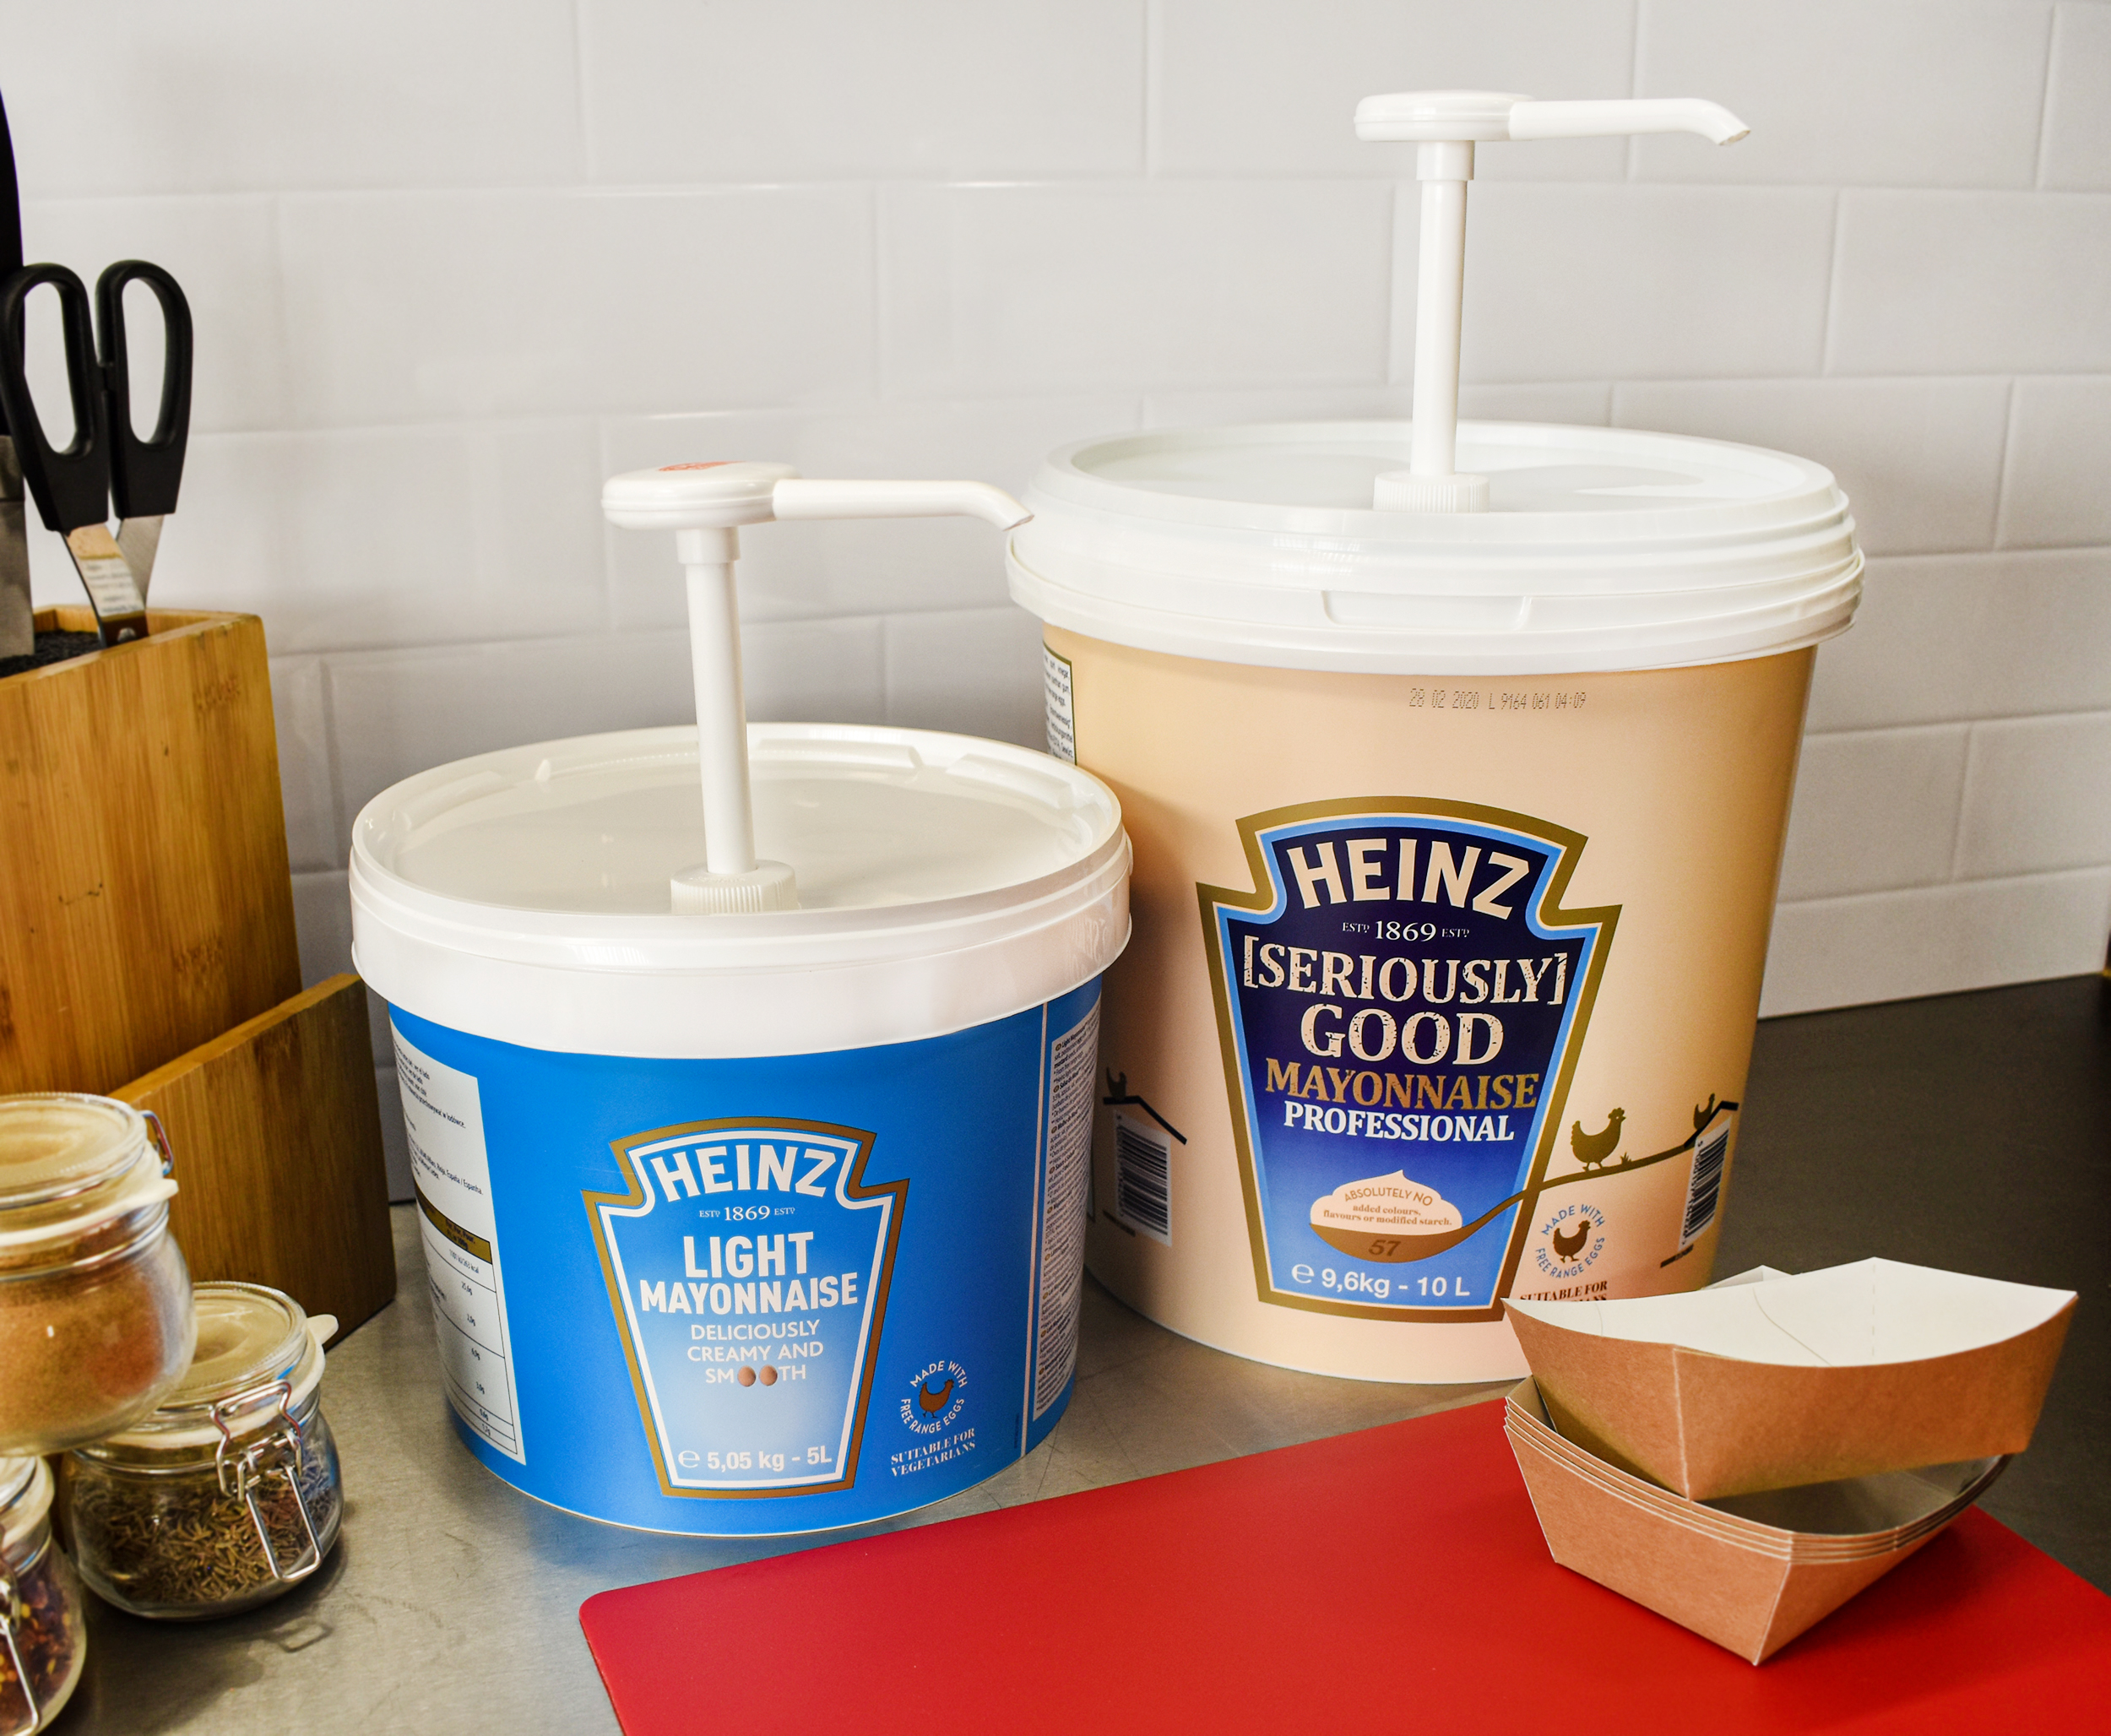 Heinz [Seriously] Good Mayonnaise 5L Pail